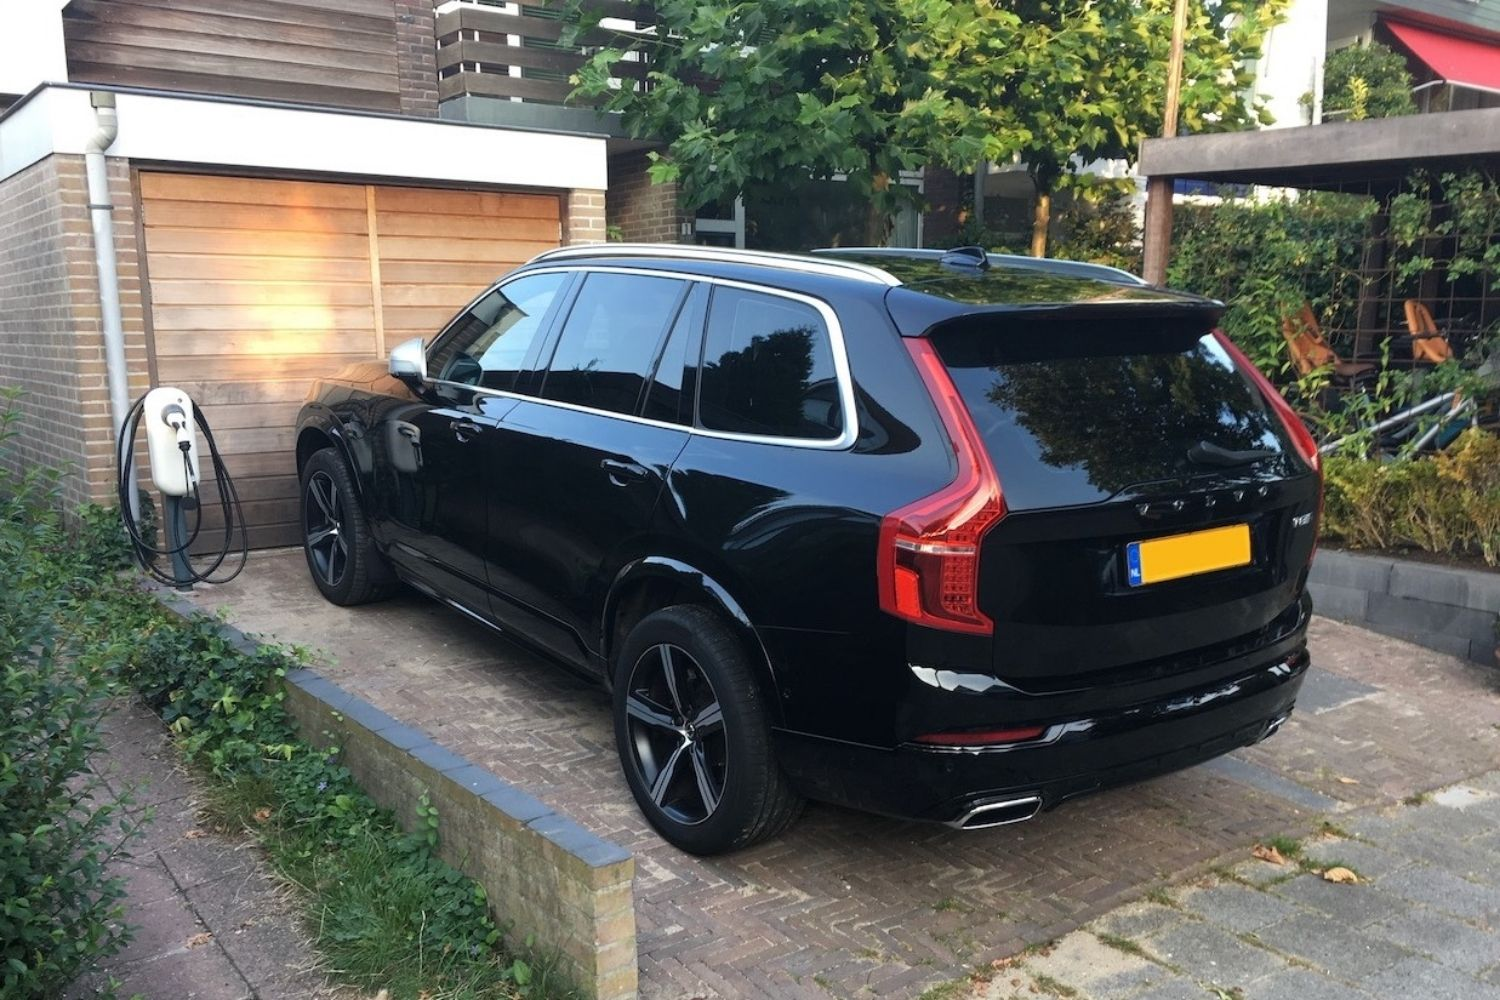 ChargeMakers-Laadpaal-Zakelijk-NewMotion-XC90-after